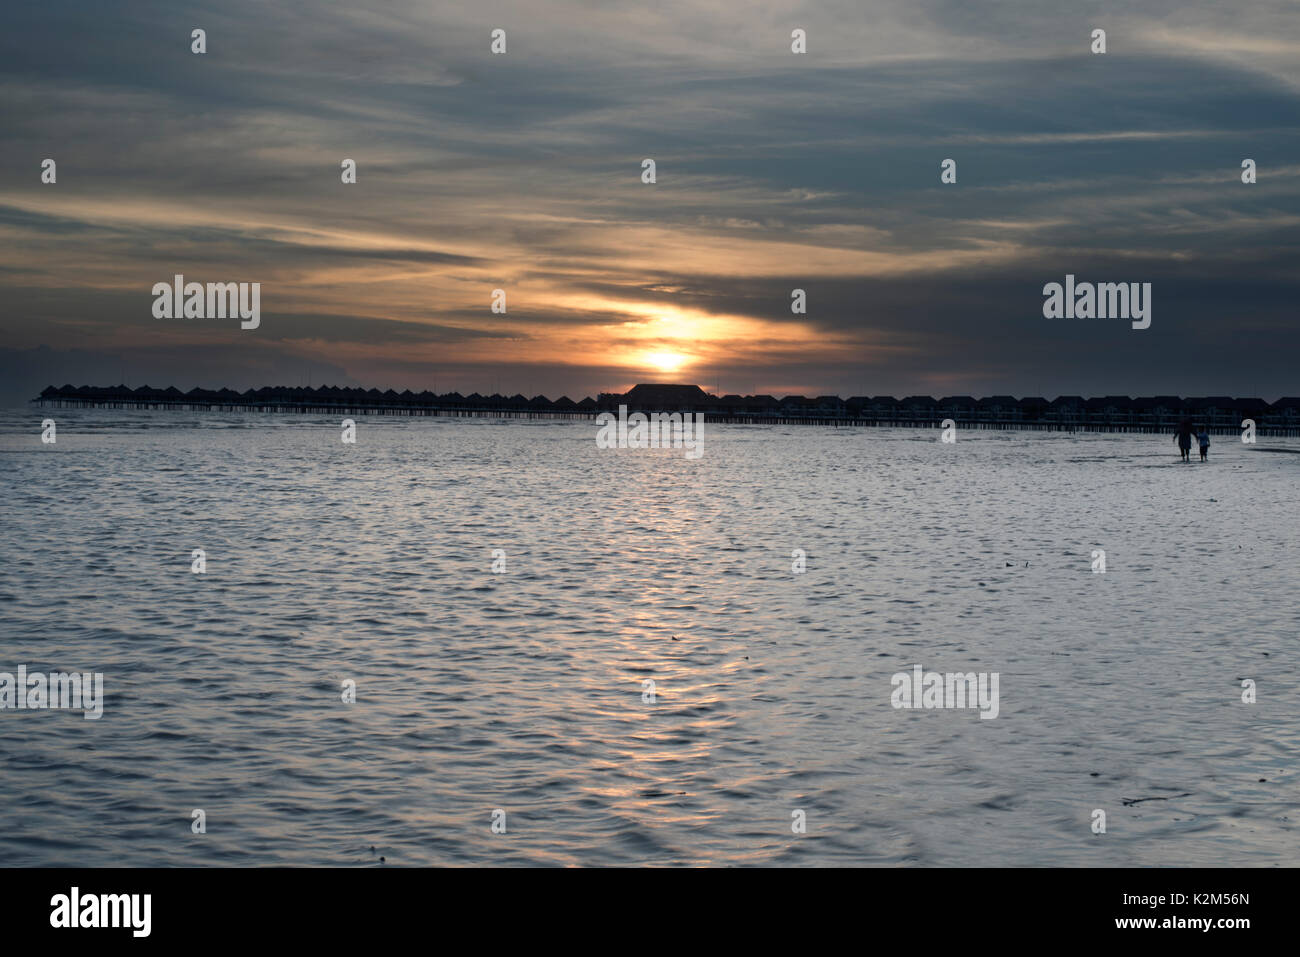 Sunset at Beach - Stock Image